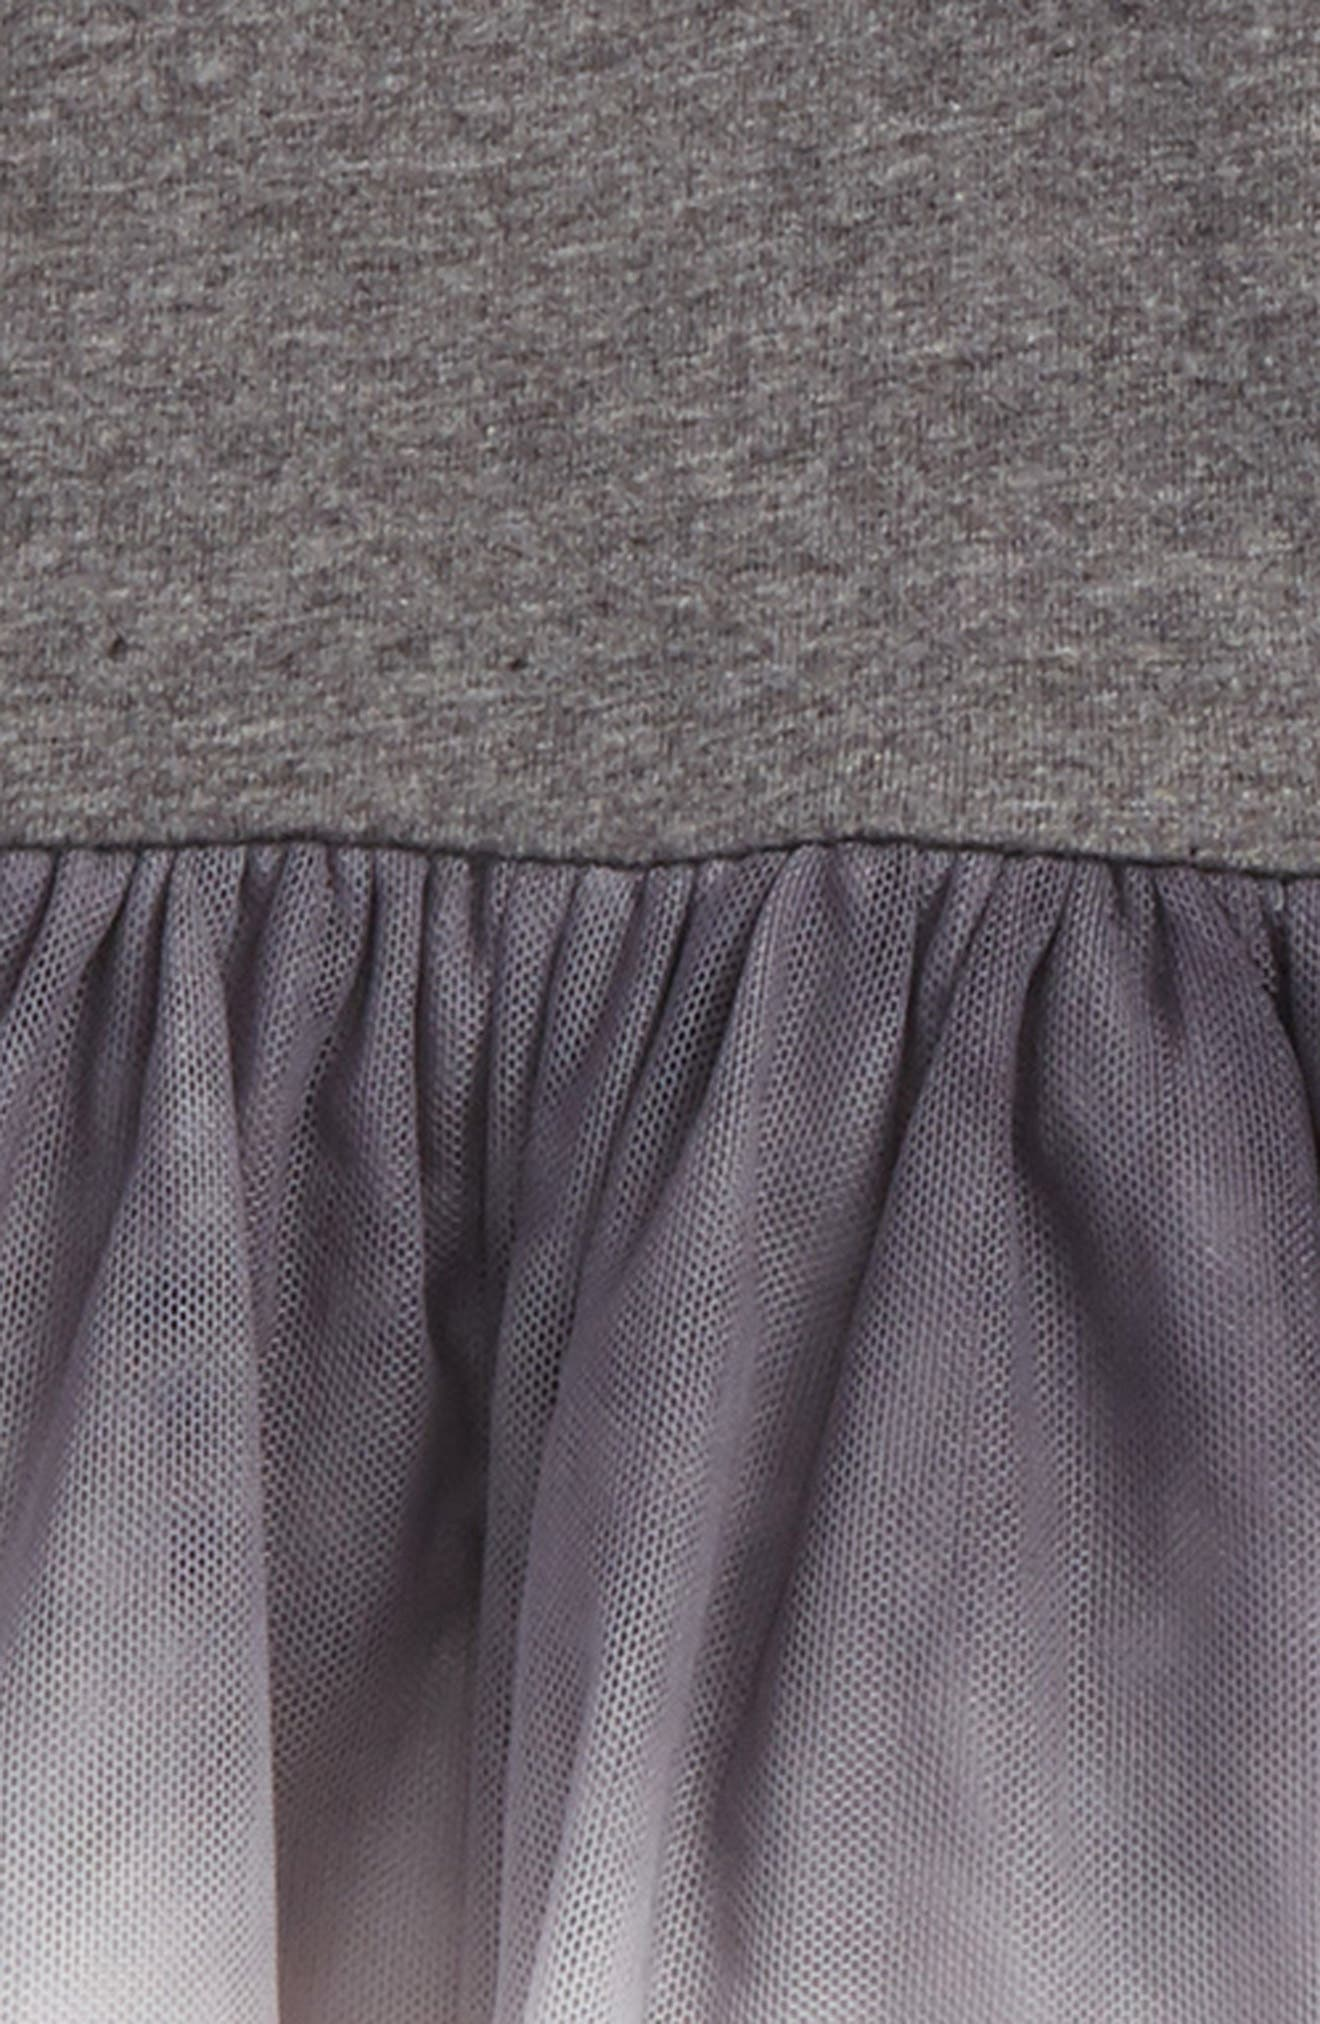 Dip Dye Tulle Dress,                             Alternate thumbnail 2, color,                             Dark Grey